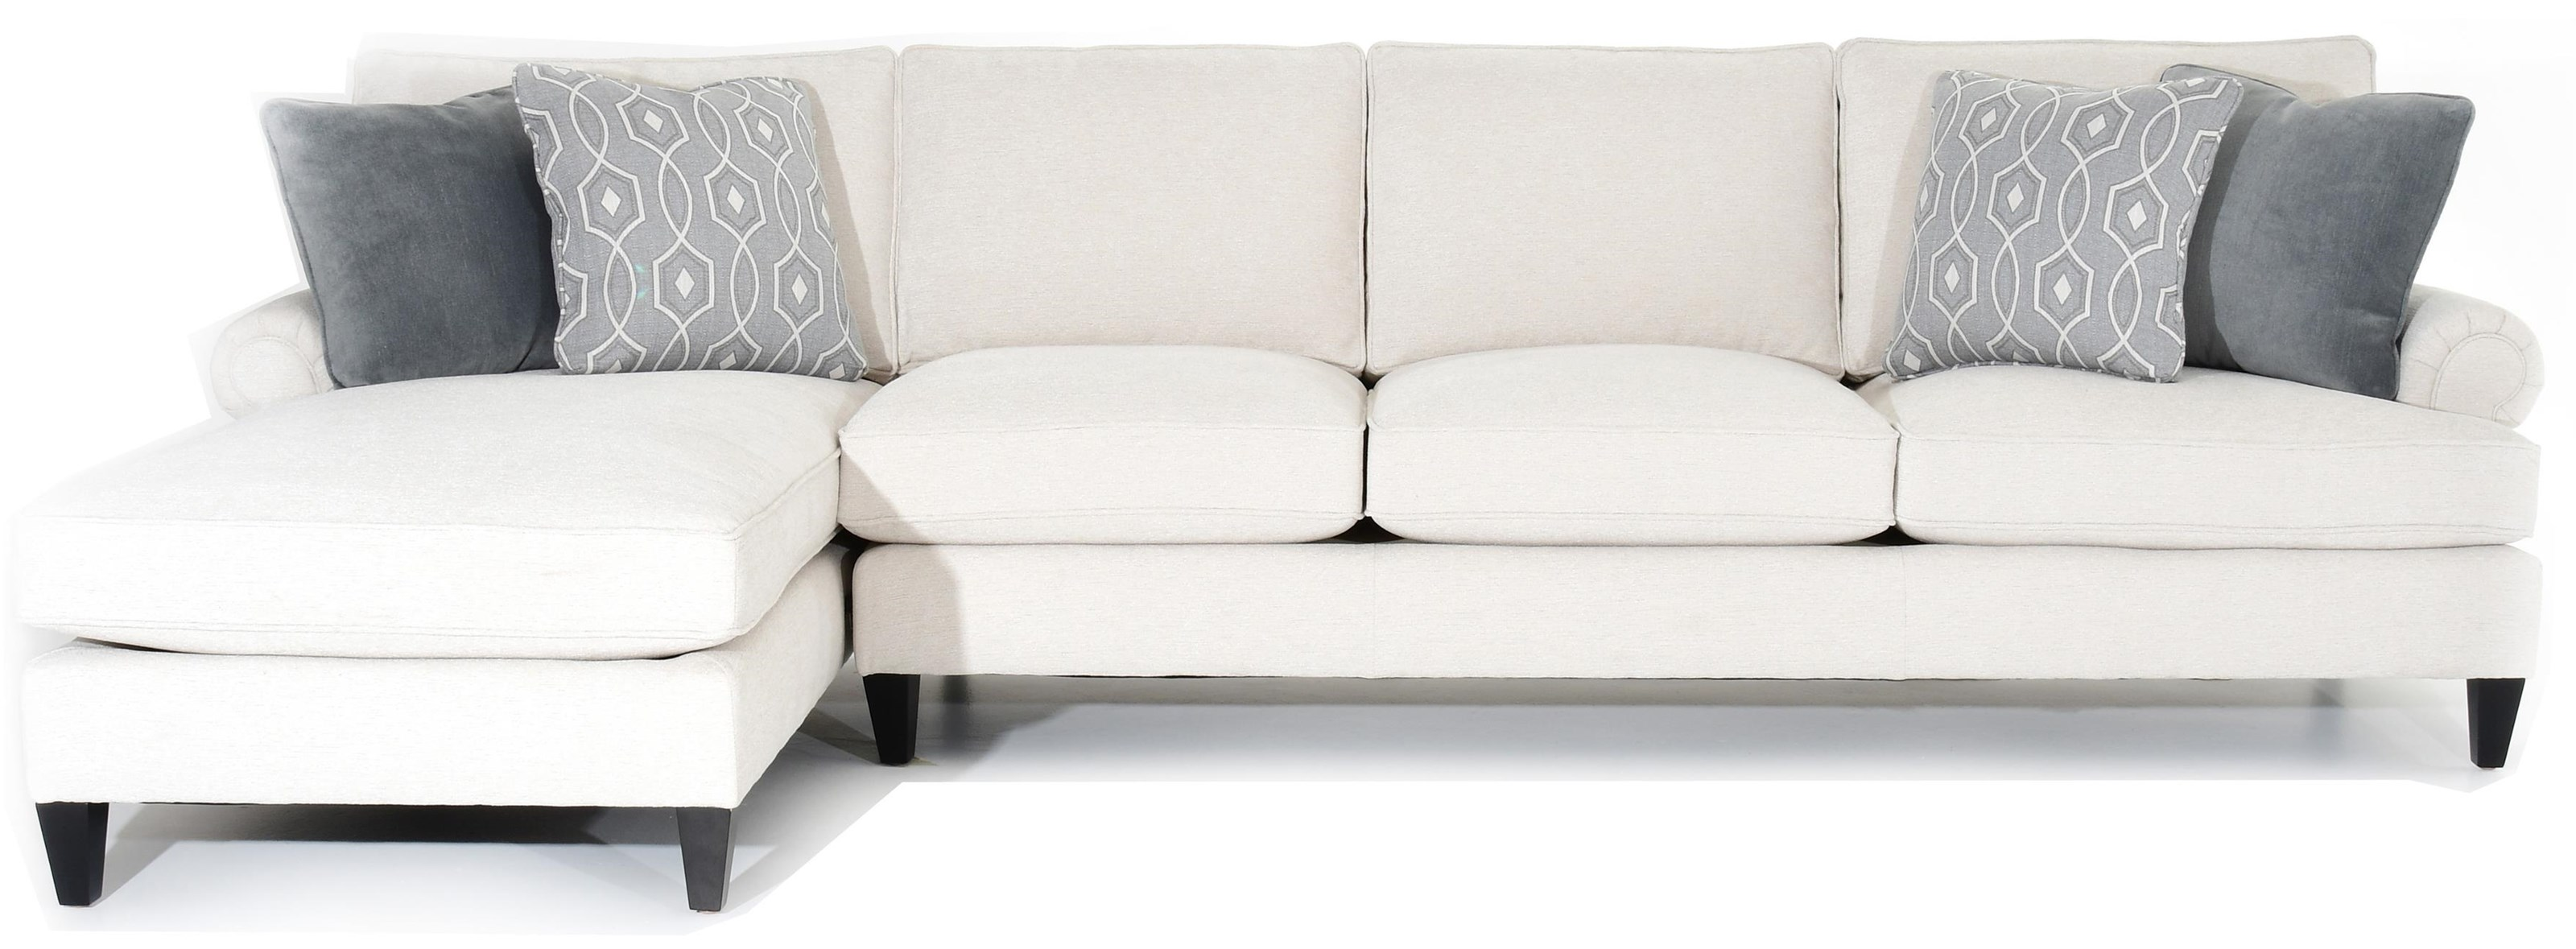 Signature Seating Customizable Sofa with Chaise by Bernhardt at Baer's Furniture